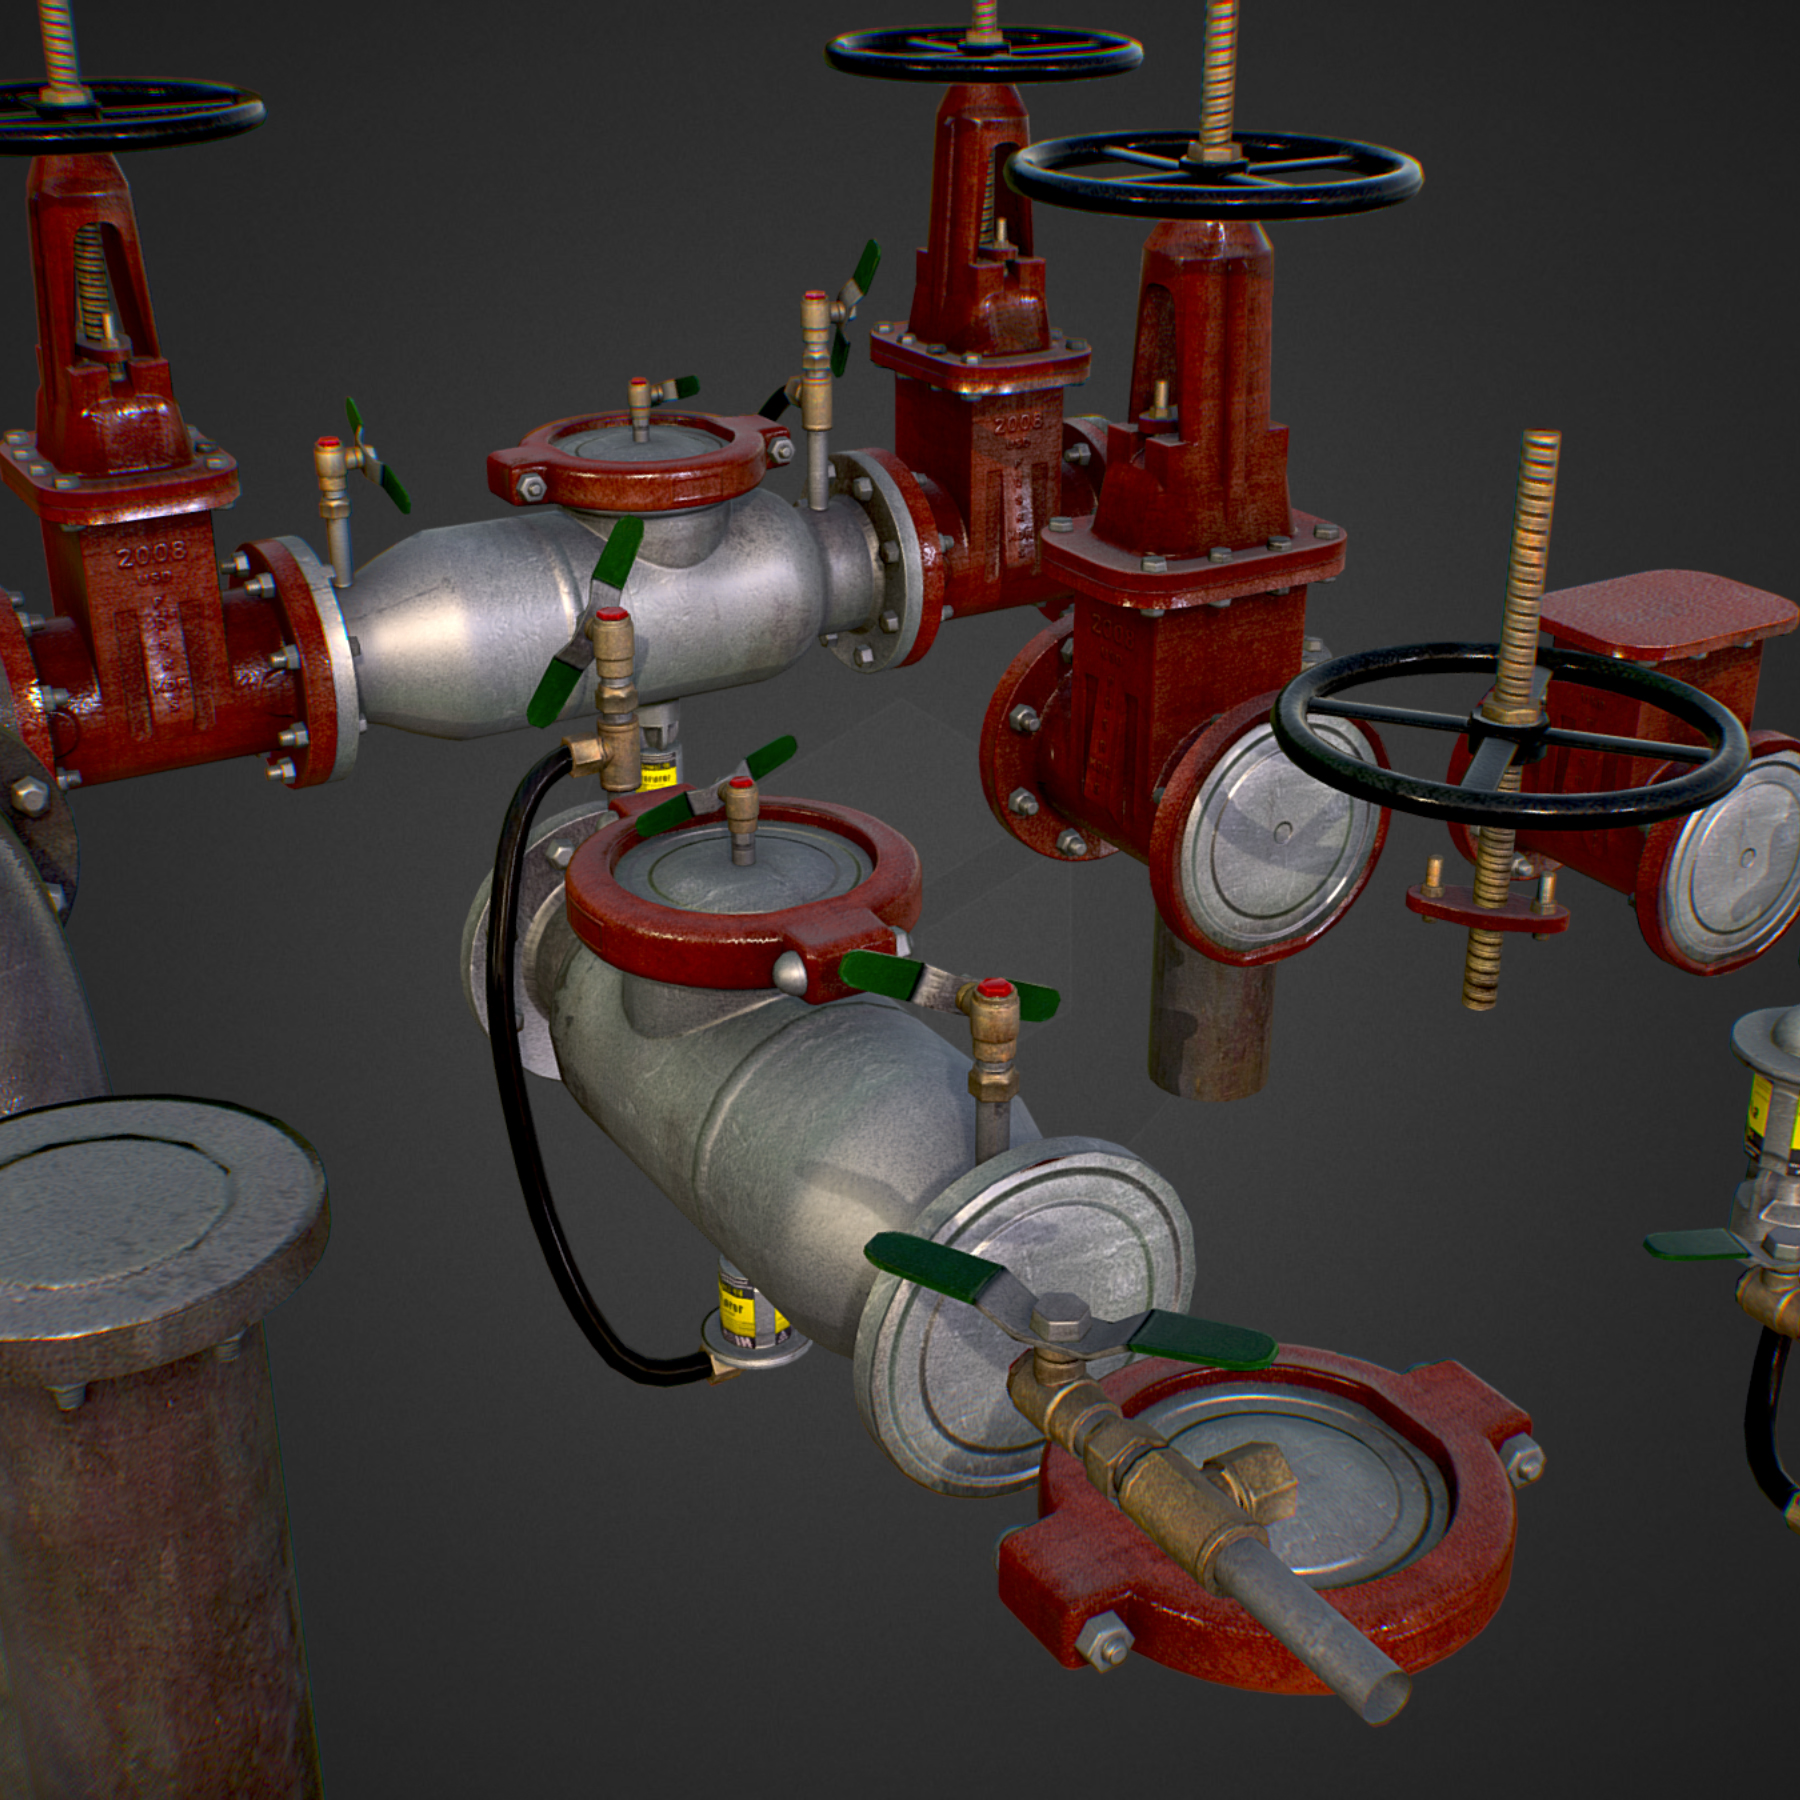 low poly game backflow water pipe constructor 3d model max  fbx ma mb tga targa icb vda vst pix obj 272481